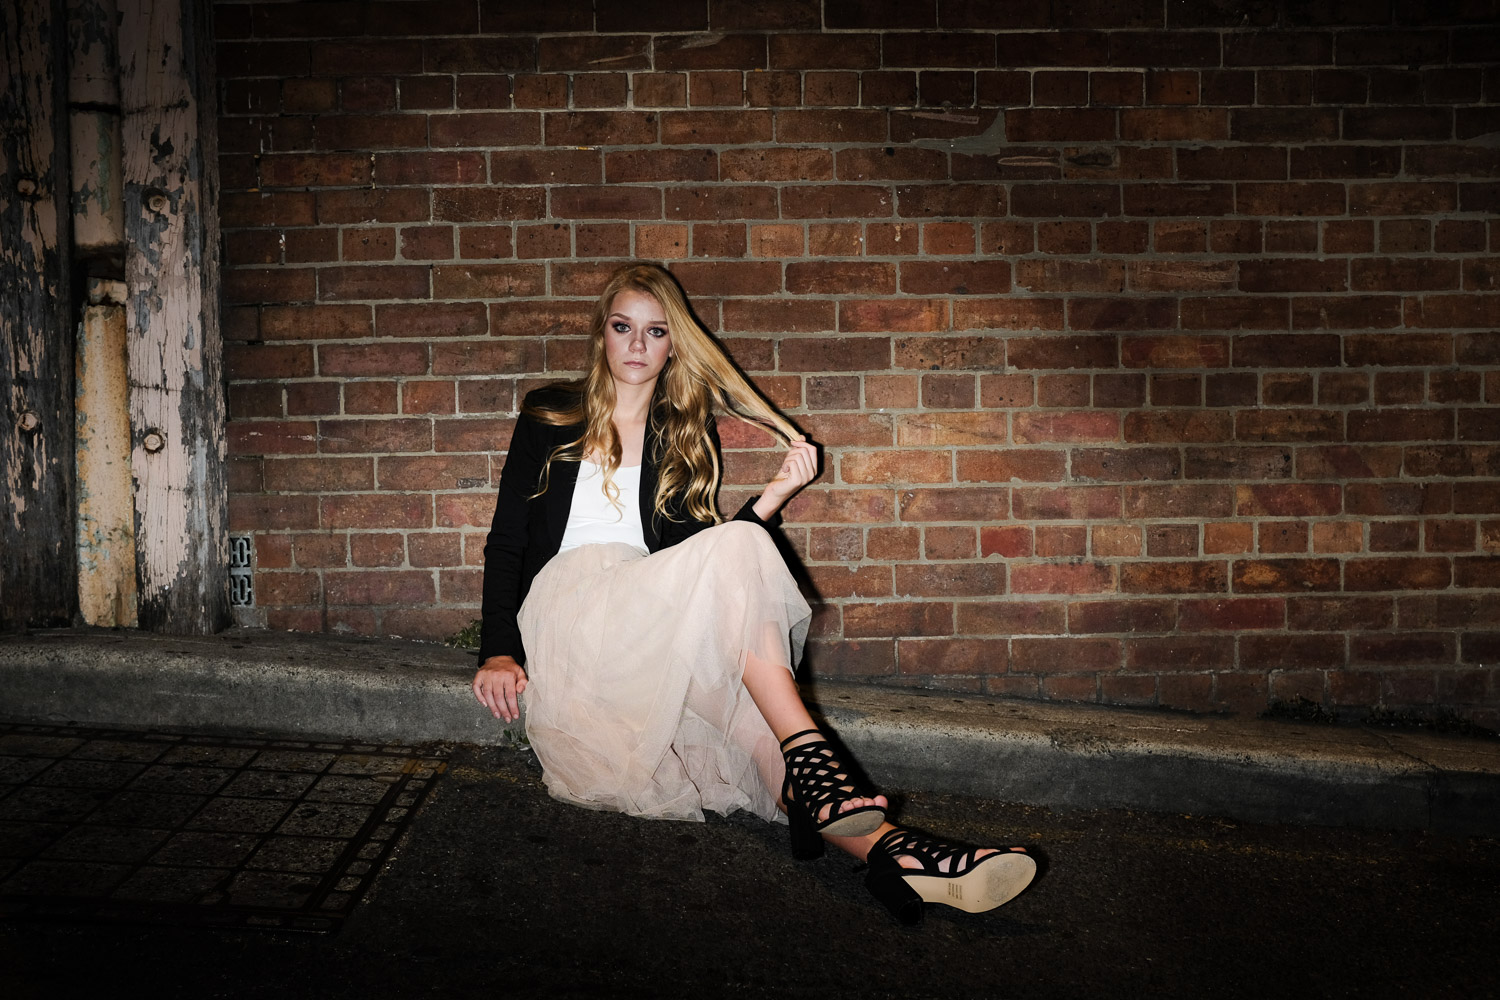 Image: In this shot, I used the Fujifilm X100F with the Godox X1T-F wireless trigger to fire an off-...